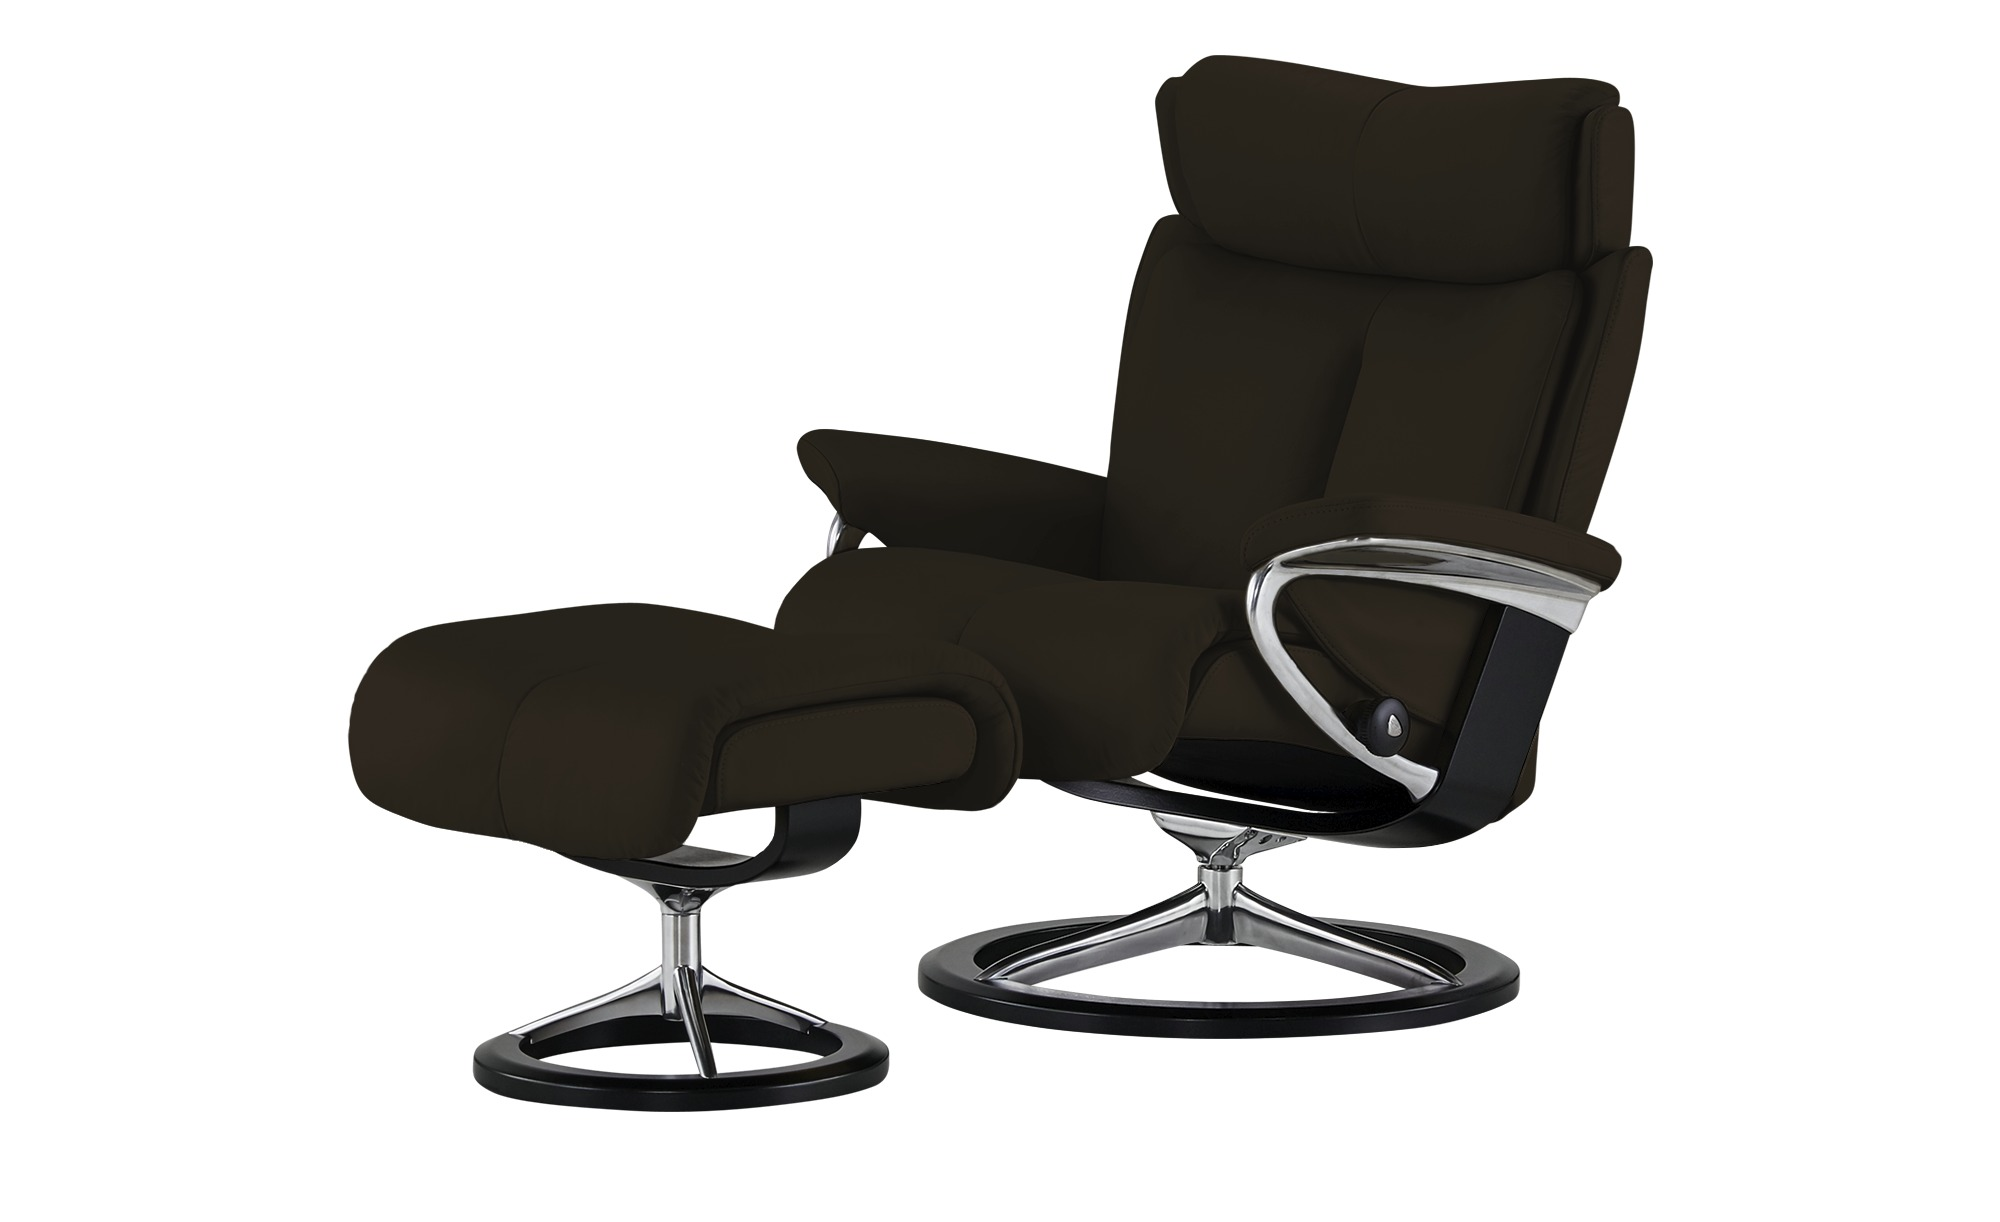 Stressless Relaxsessel Mit Hocker Magic M Braun Aluminium Schwarz